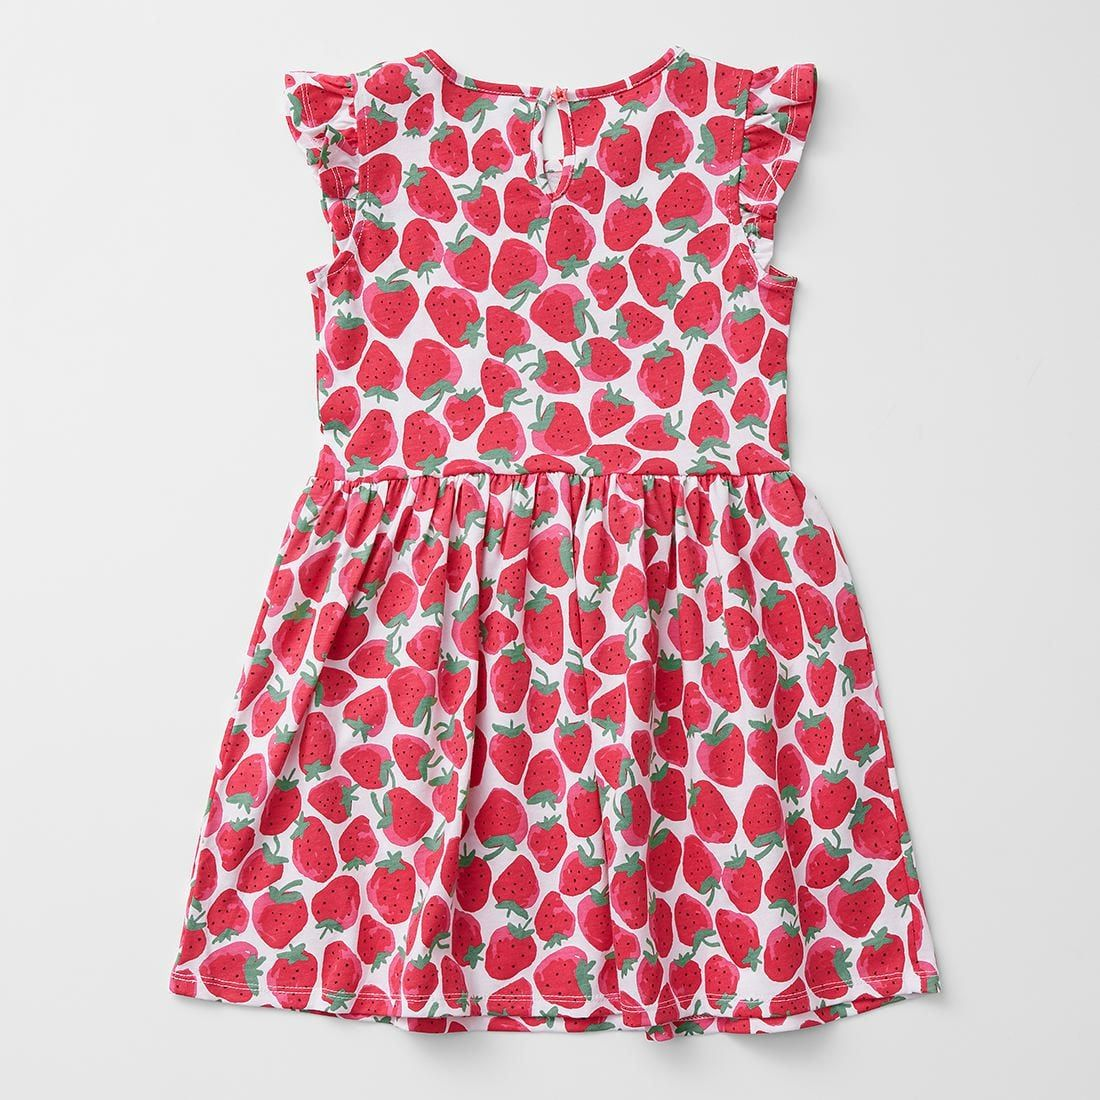 Pin By Jen On Kids Stuff Target Dresses Dresses Dresses With Sleeves [ 1100 x 1100 Pixel ]